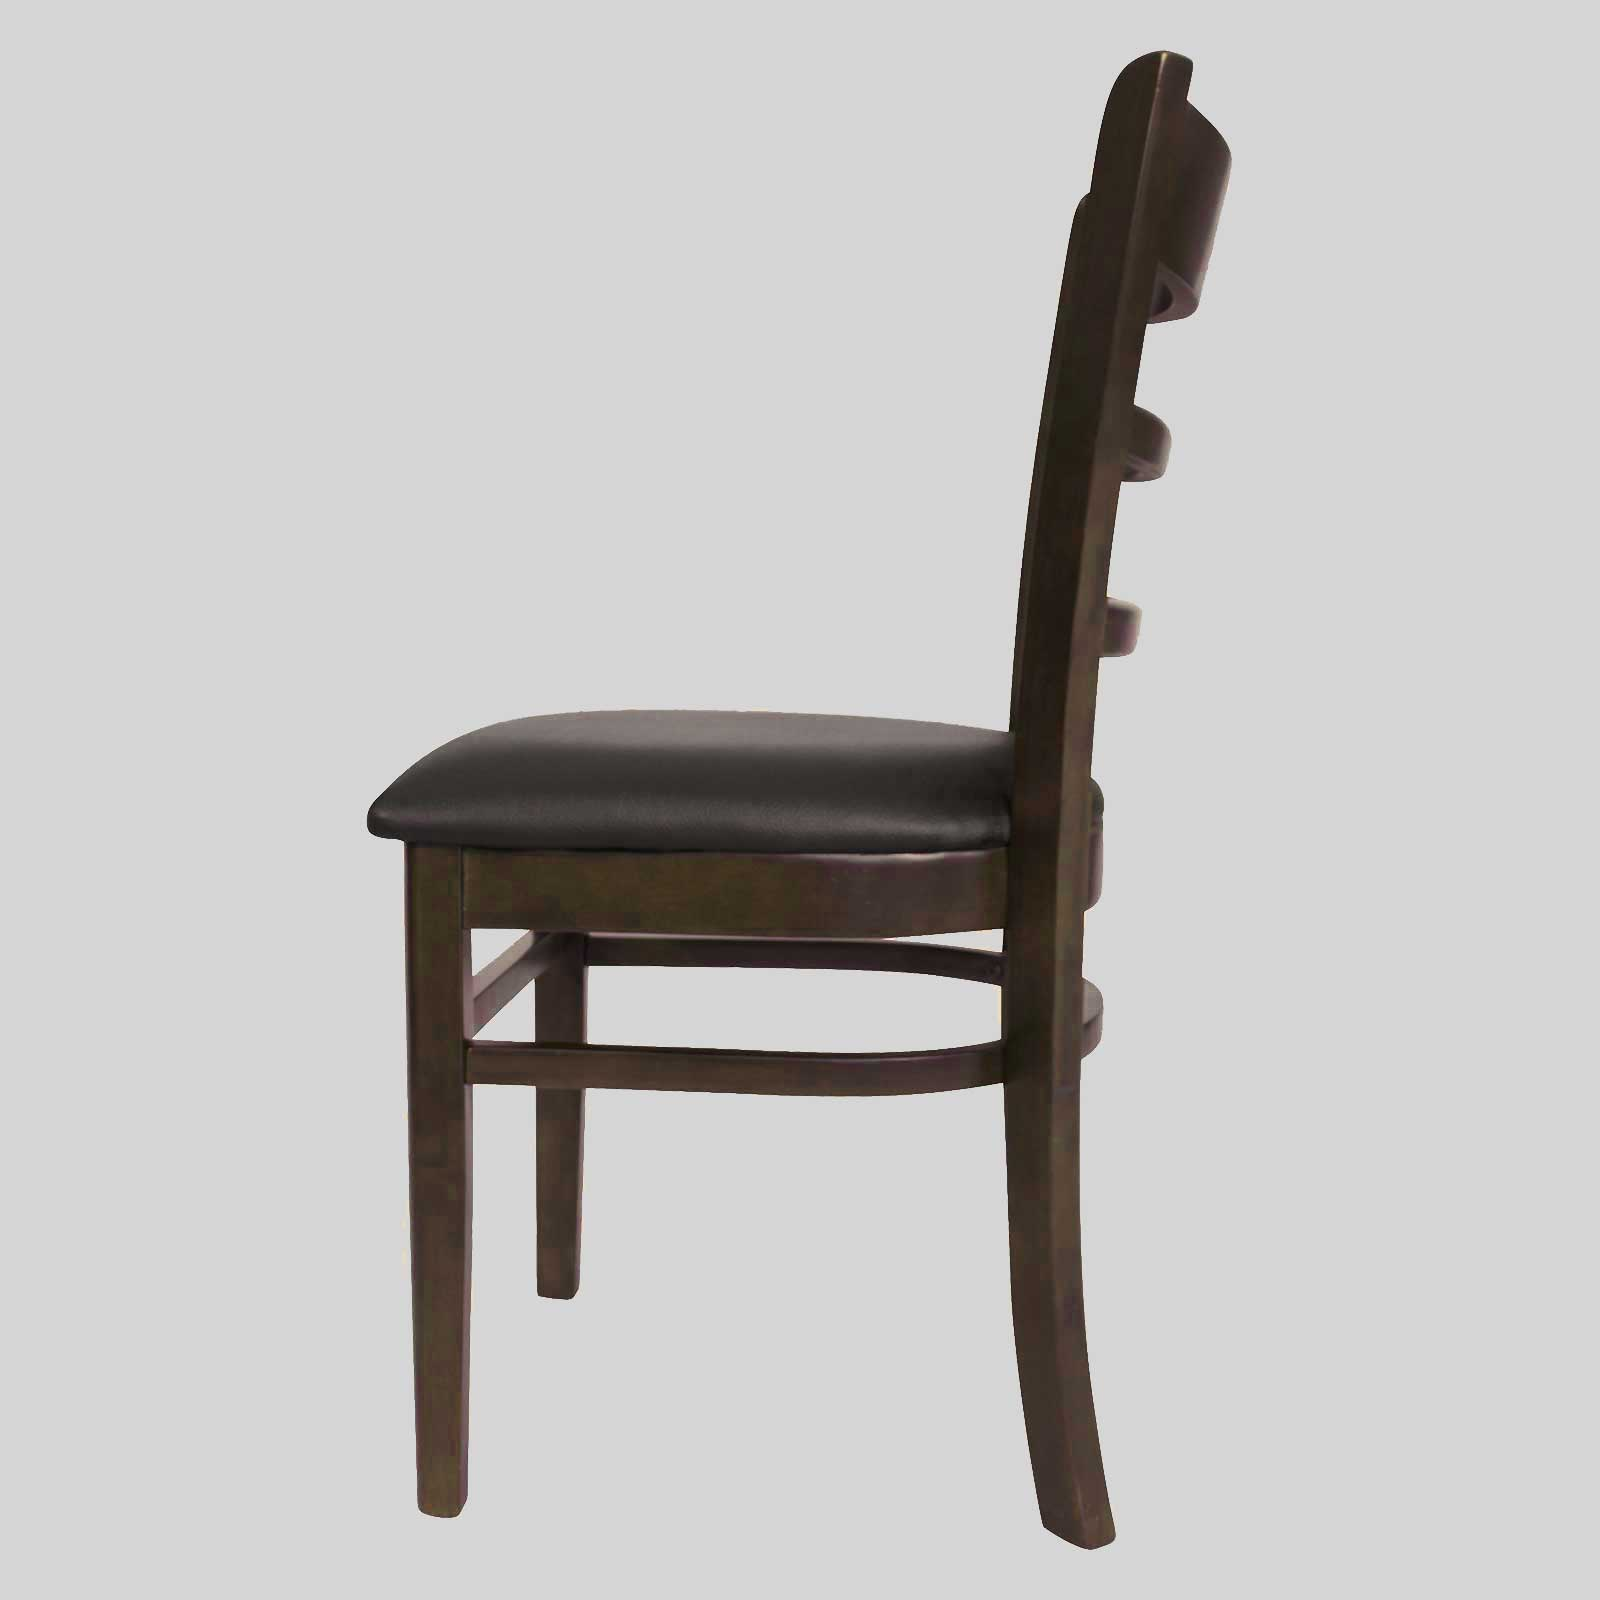 Commercial Timber Chairs Bronson Concept Collections